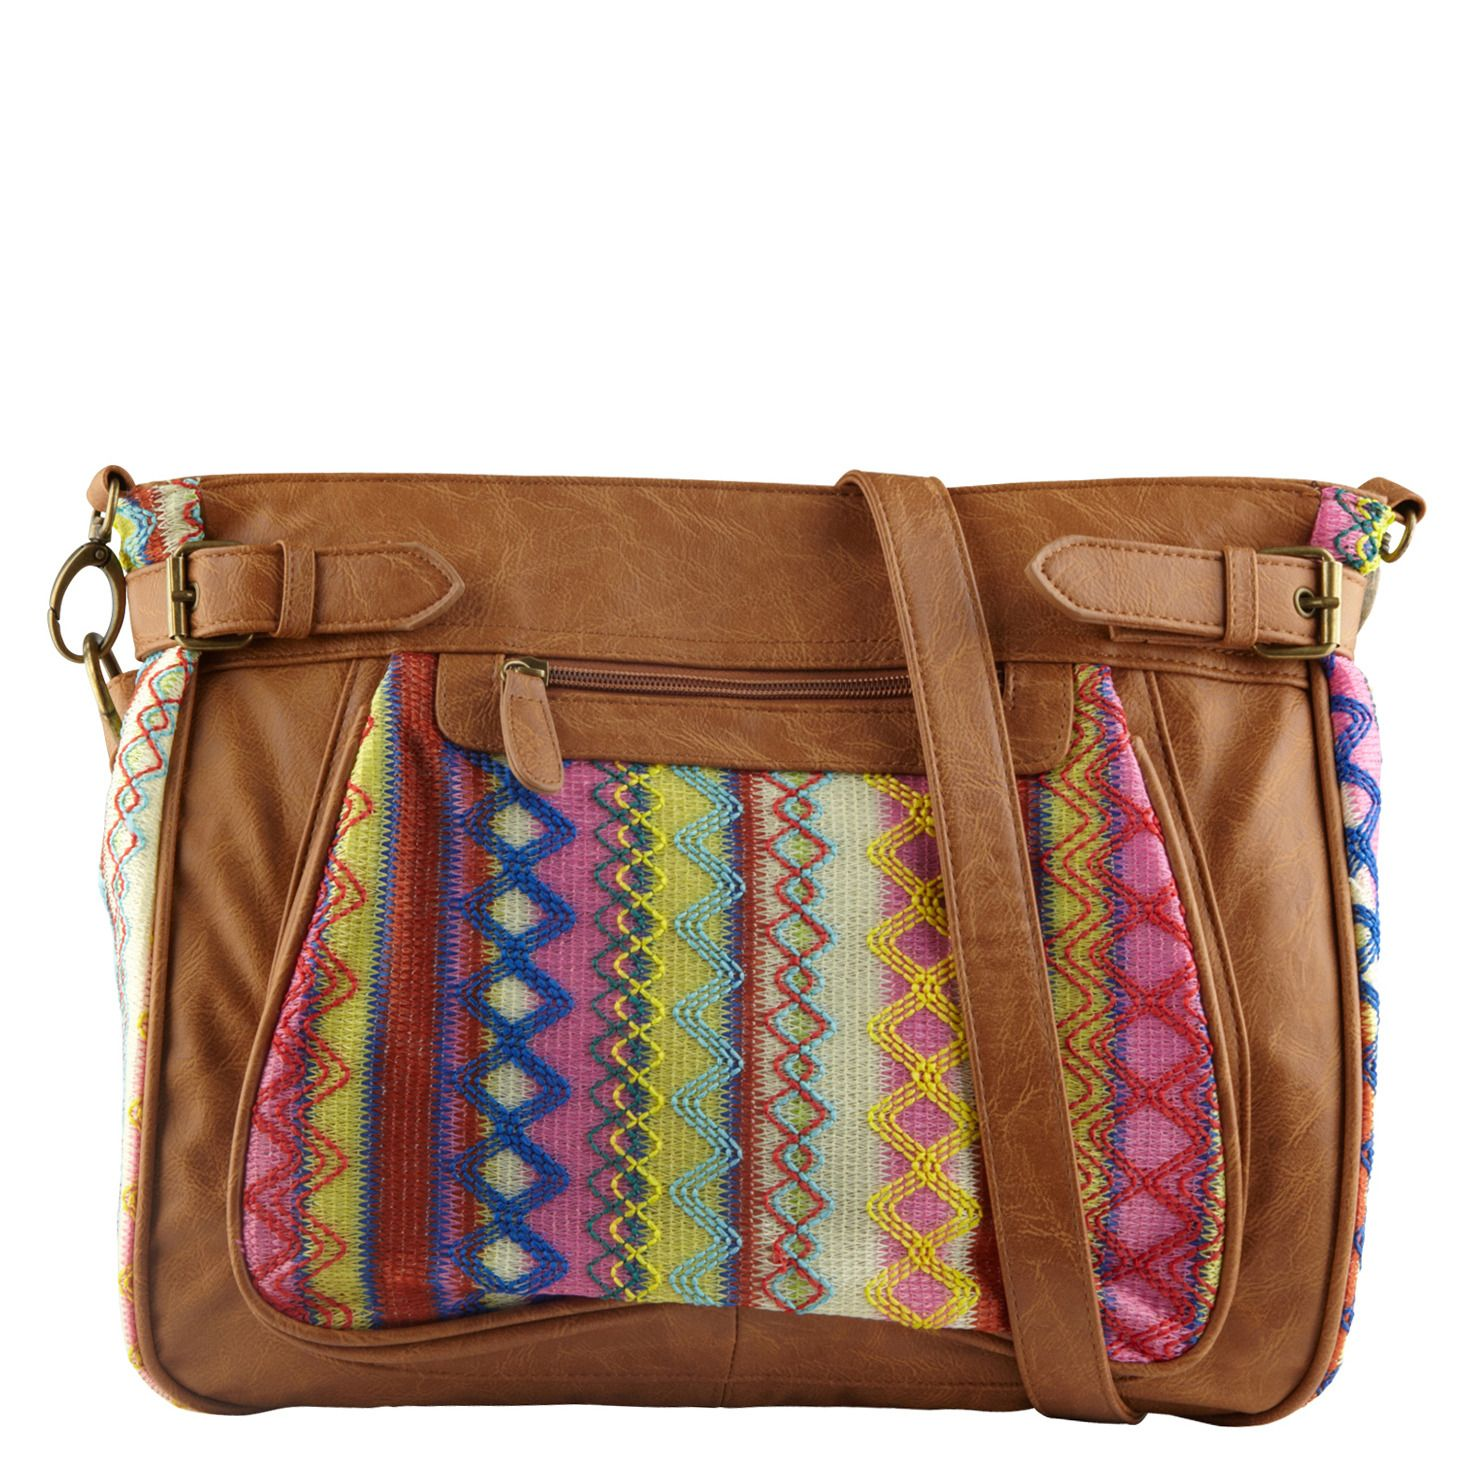 Was one of my best and favorite purses <3 <3 <3